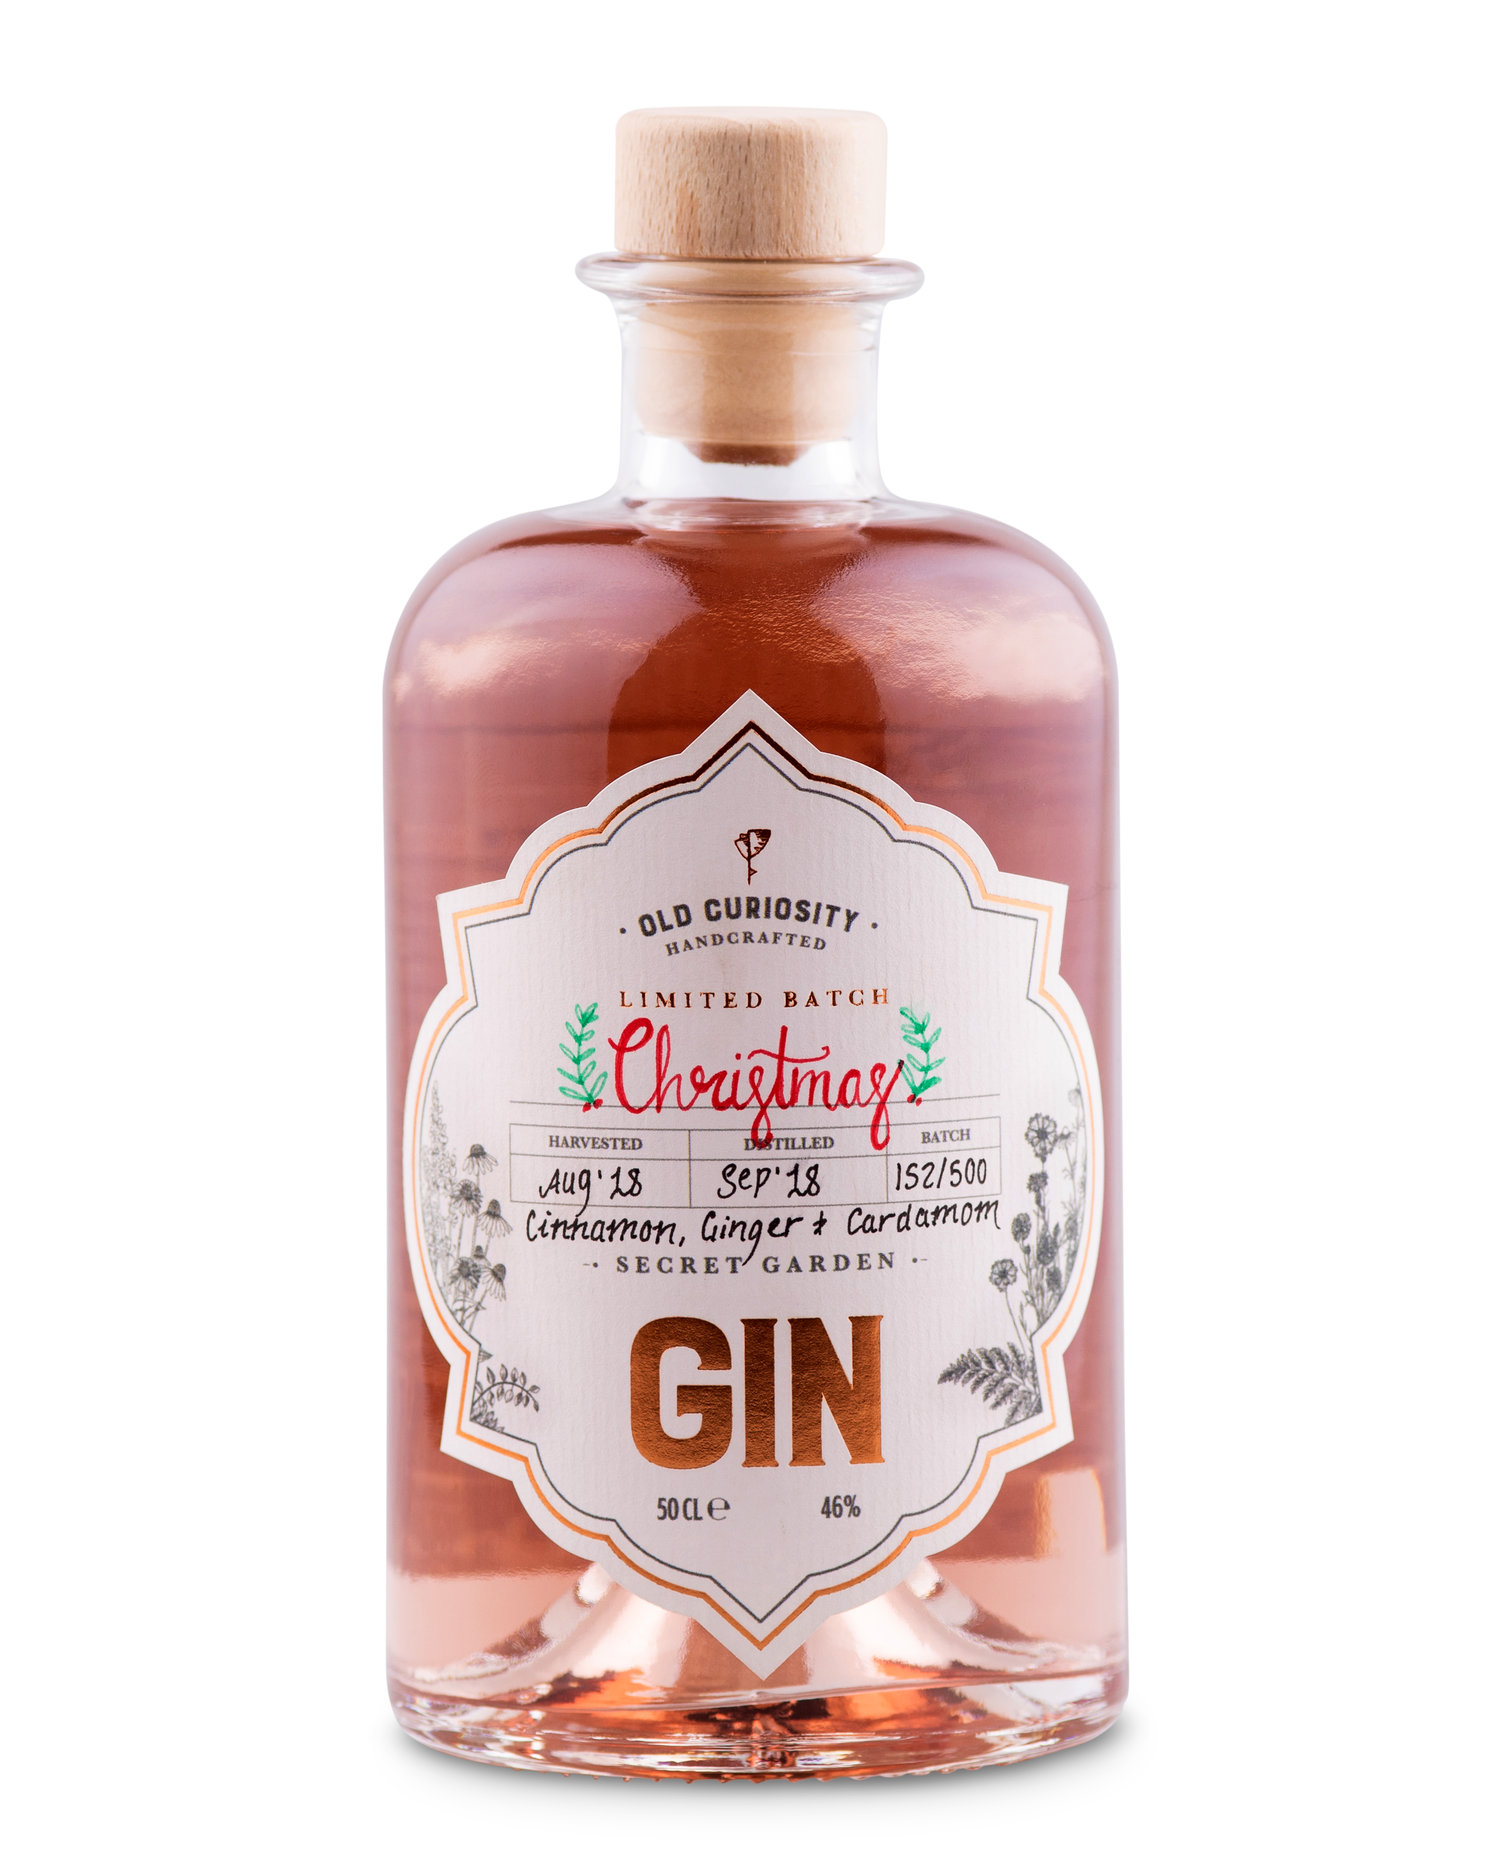 This year's Old Curiosity Gin. It's a small batch, so when it's gone that's it.